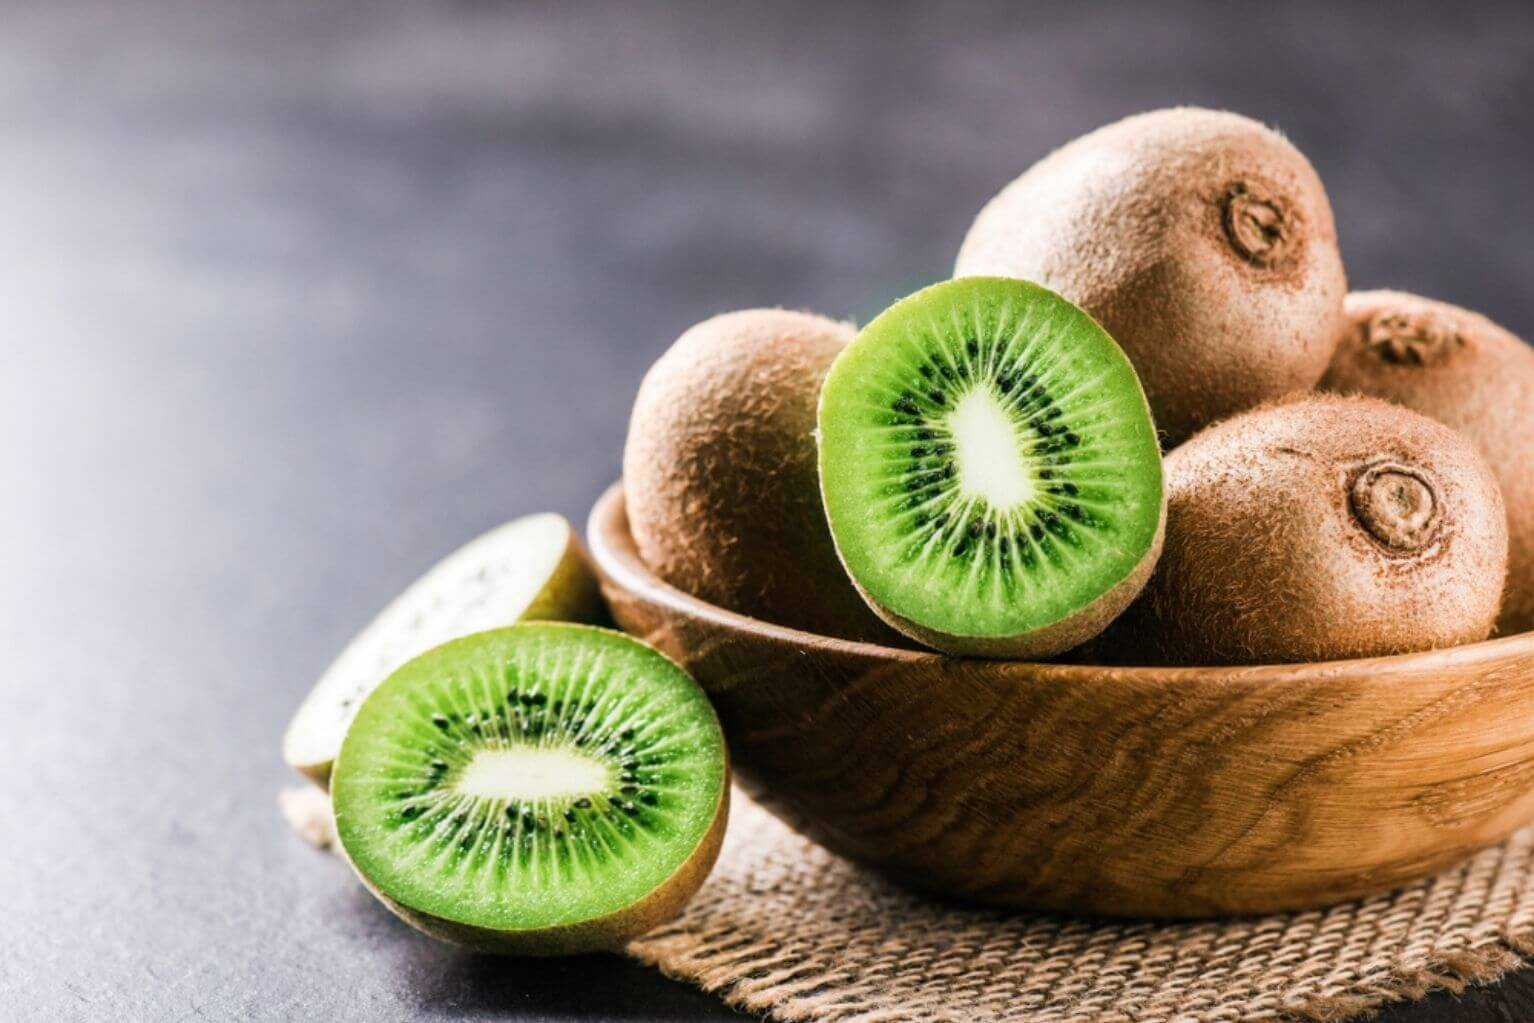 Wooden bowl full of kiwis on a burlap placemat on a wooden table with one kiwi cut in half.